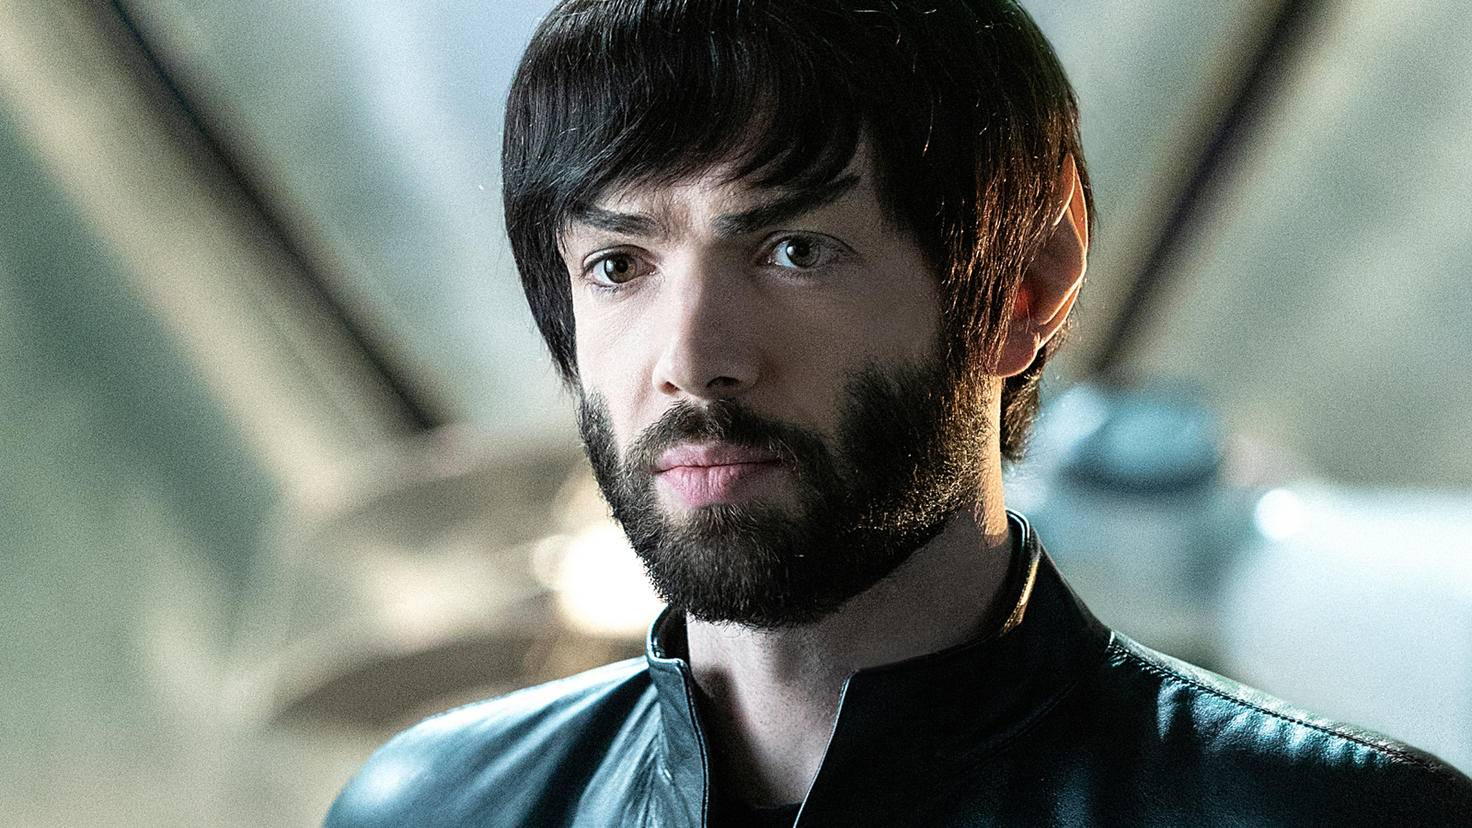 Star Trek Discovery-Spock-CBS Interactive Inc All Rights Reserved